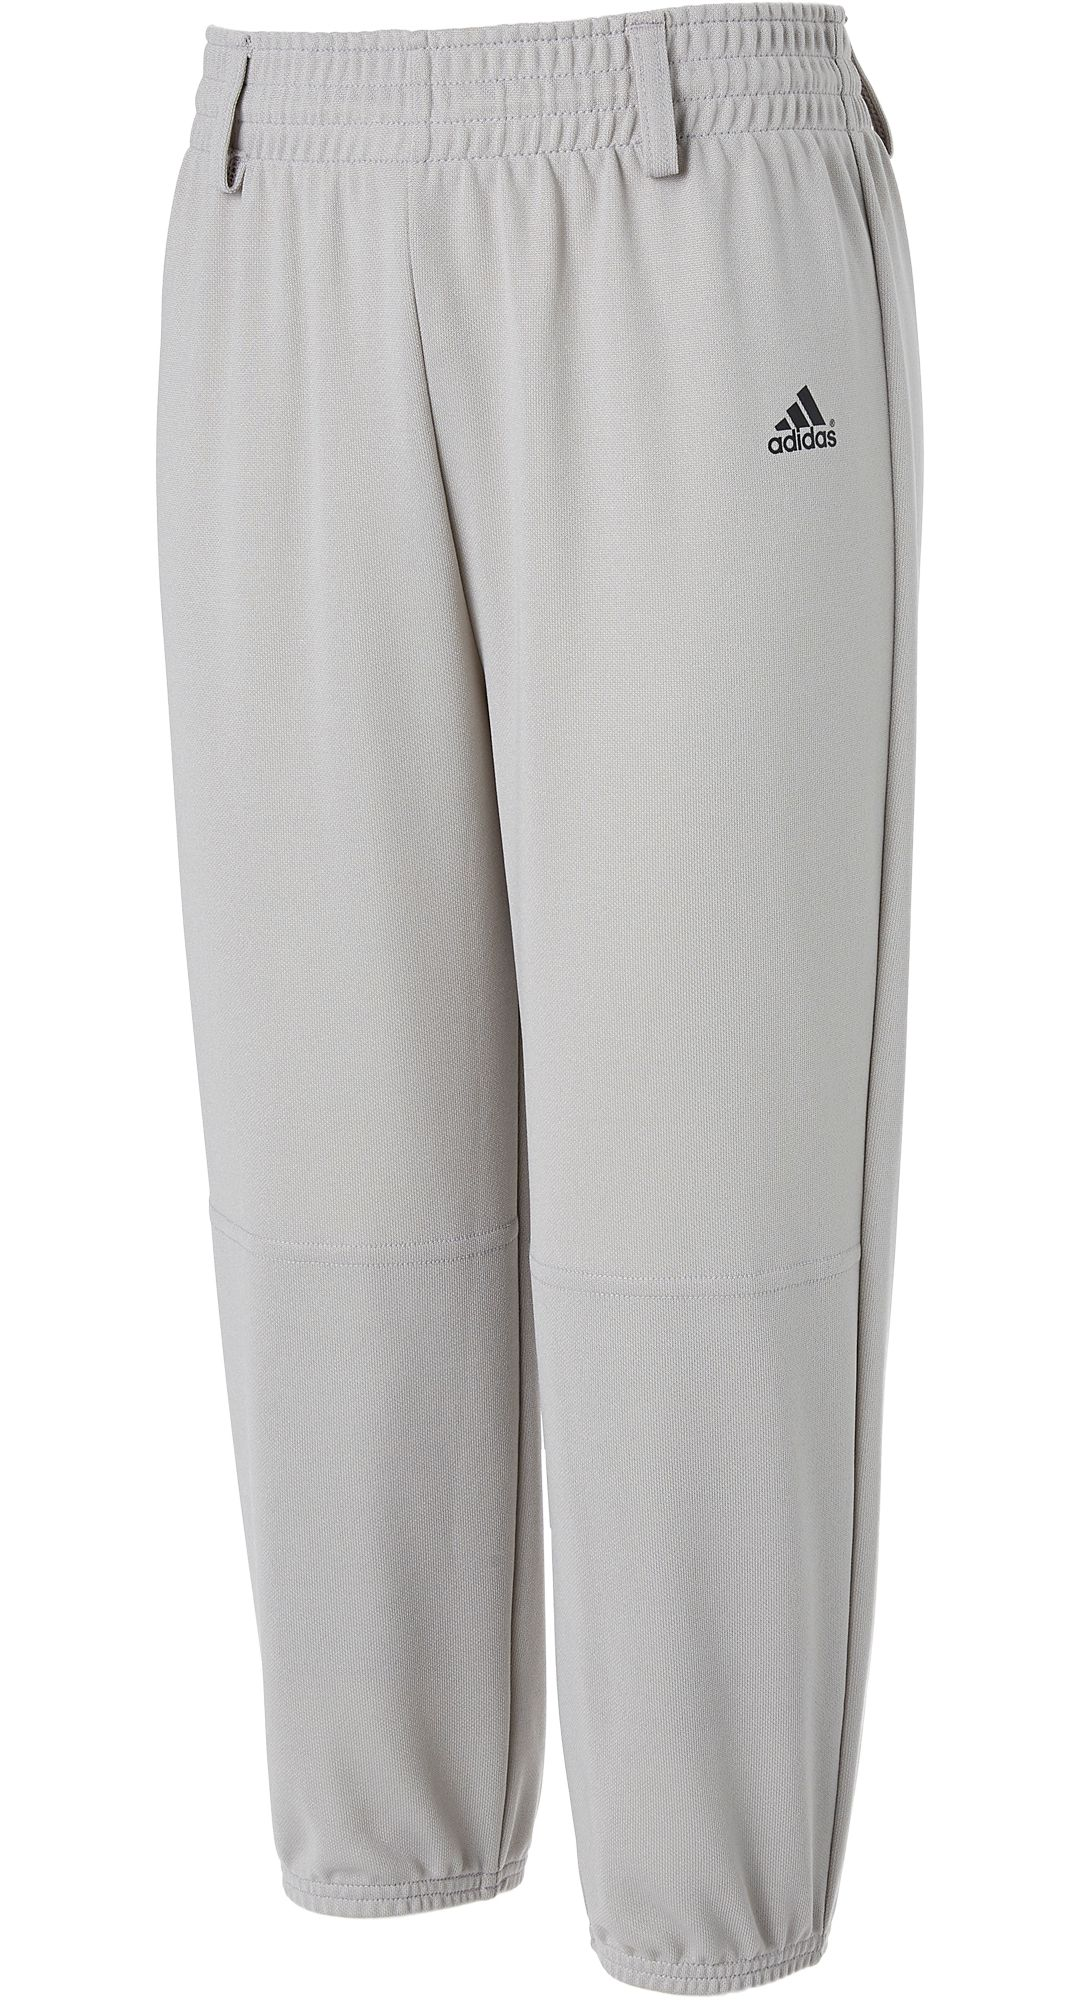 innovative design no sale tax quality adidas Youth Triple Stripe Pull-Up Pants